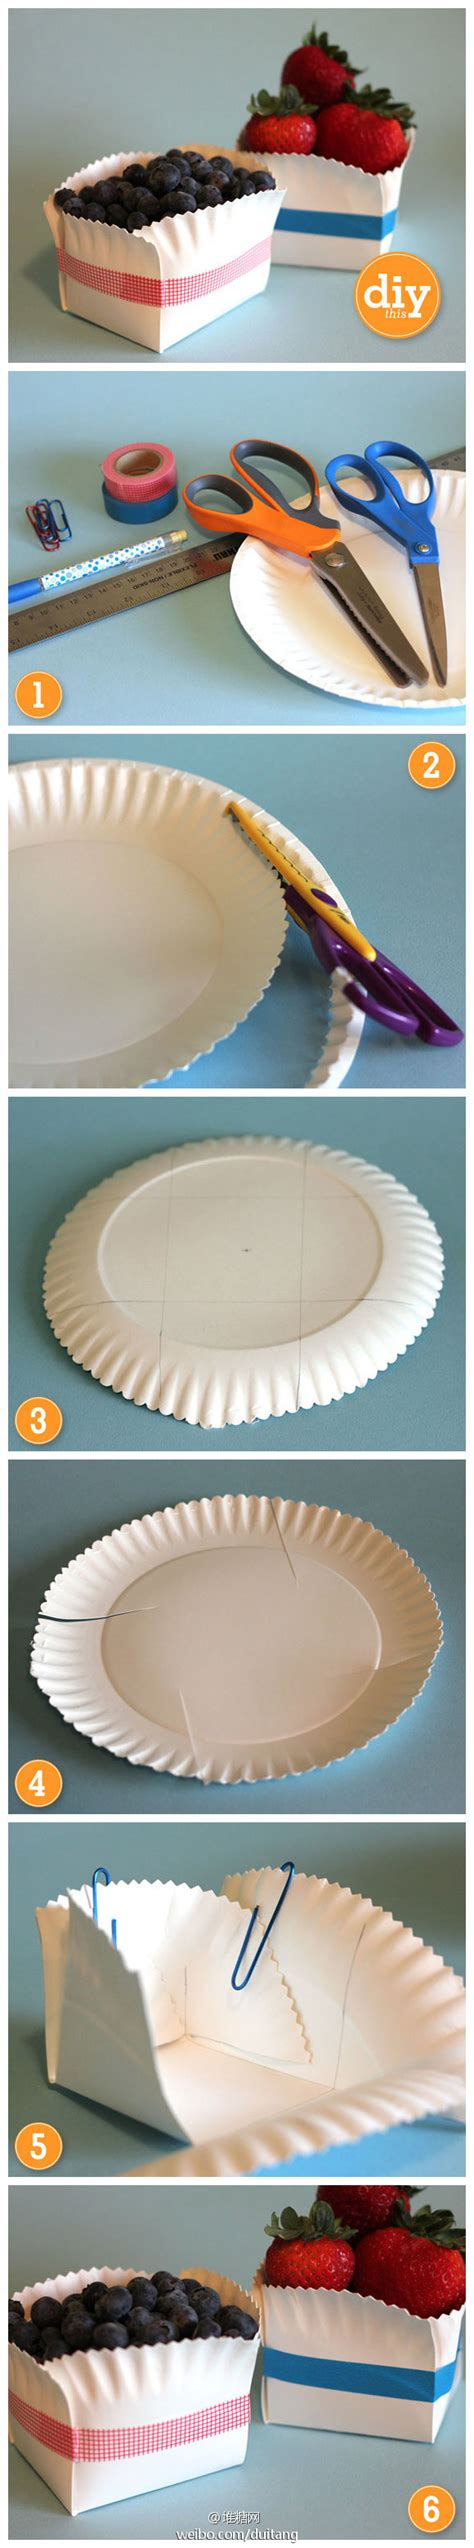 Things To Make Out Of Paper Plates - would a basket make organizing things a lot easier see